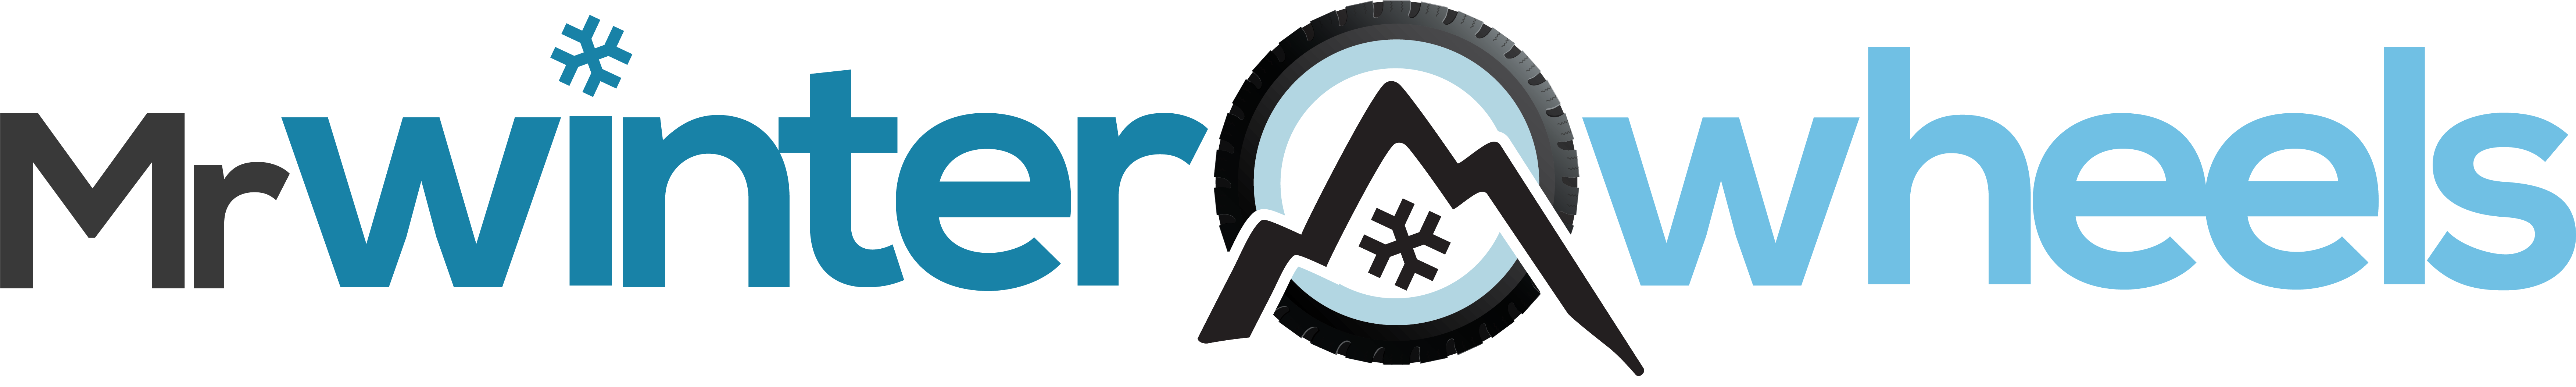 MrWinterWheels.co.uk - Winter Wheels and Tyres